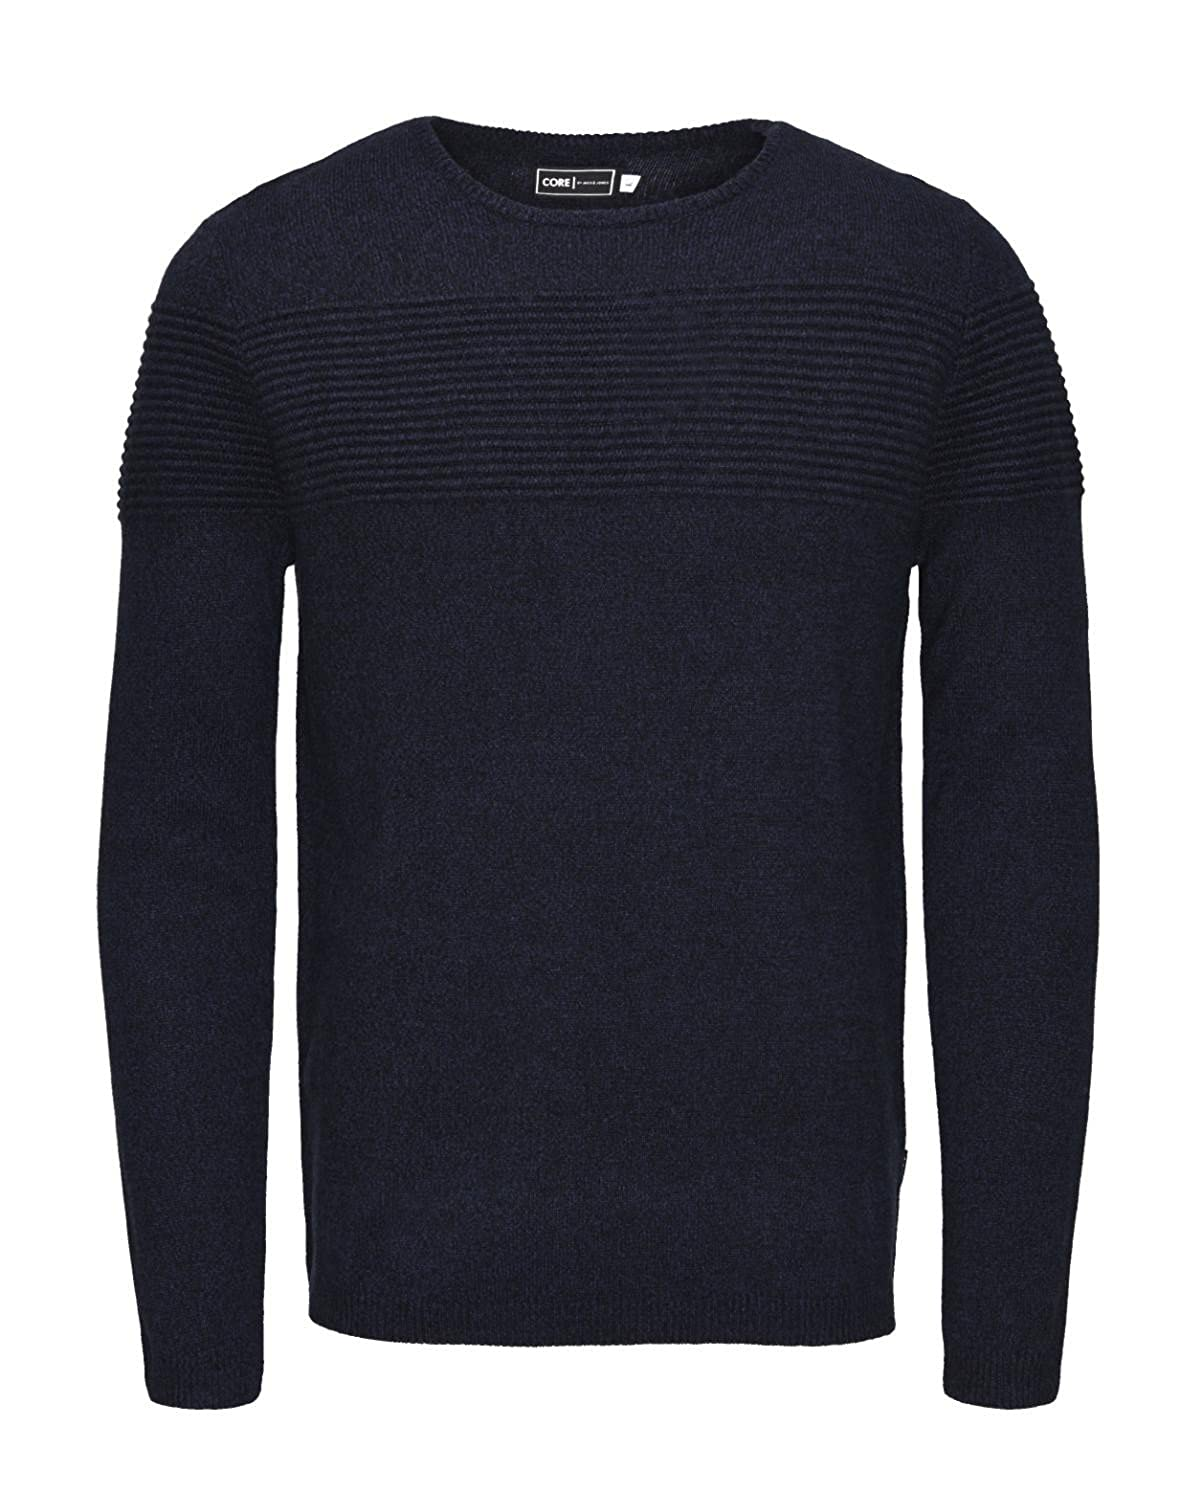 JACK & JONES Men's Jumper Black Black